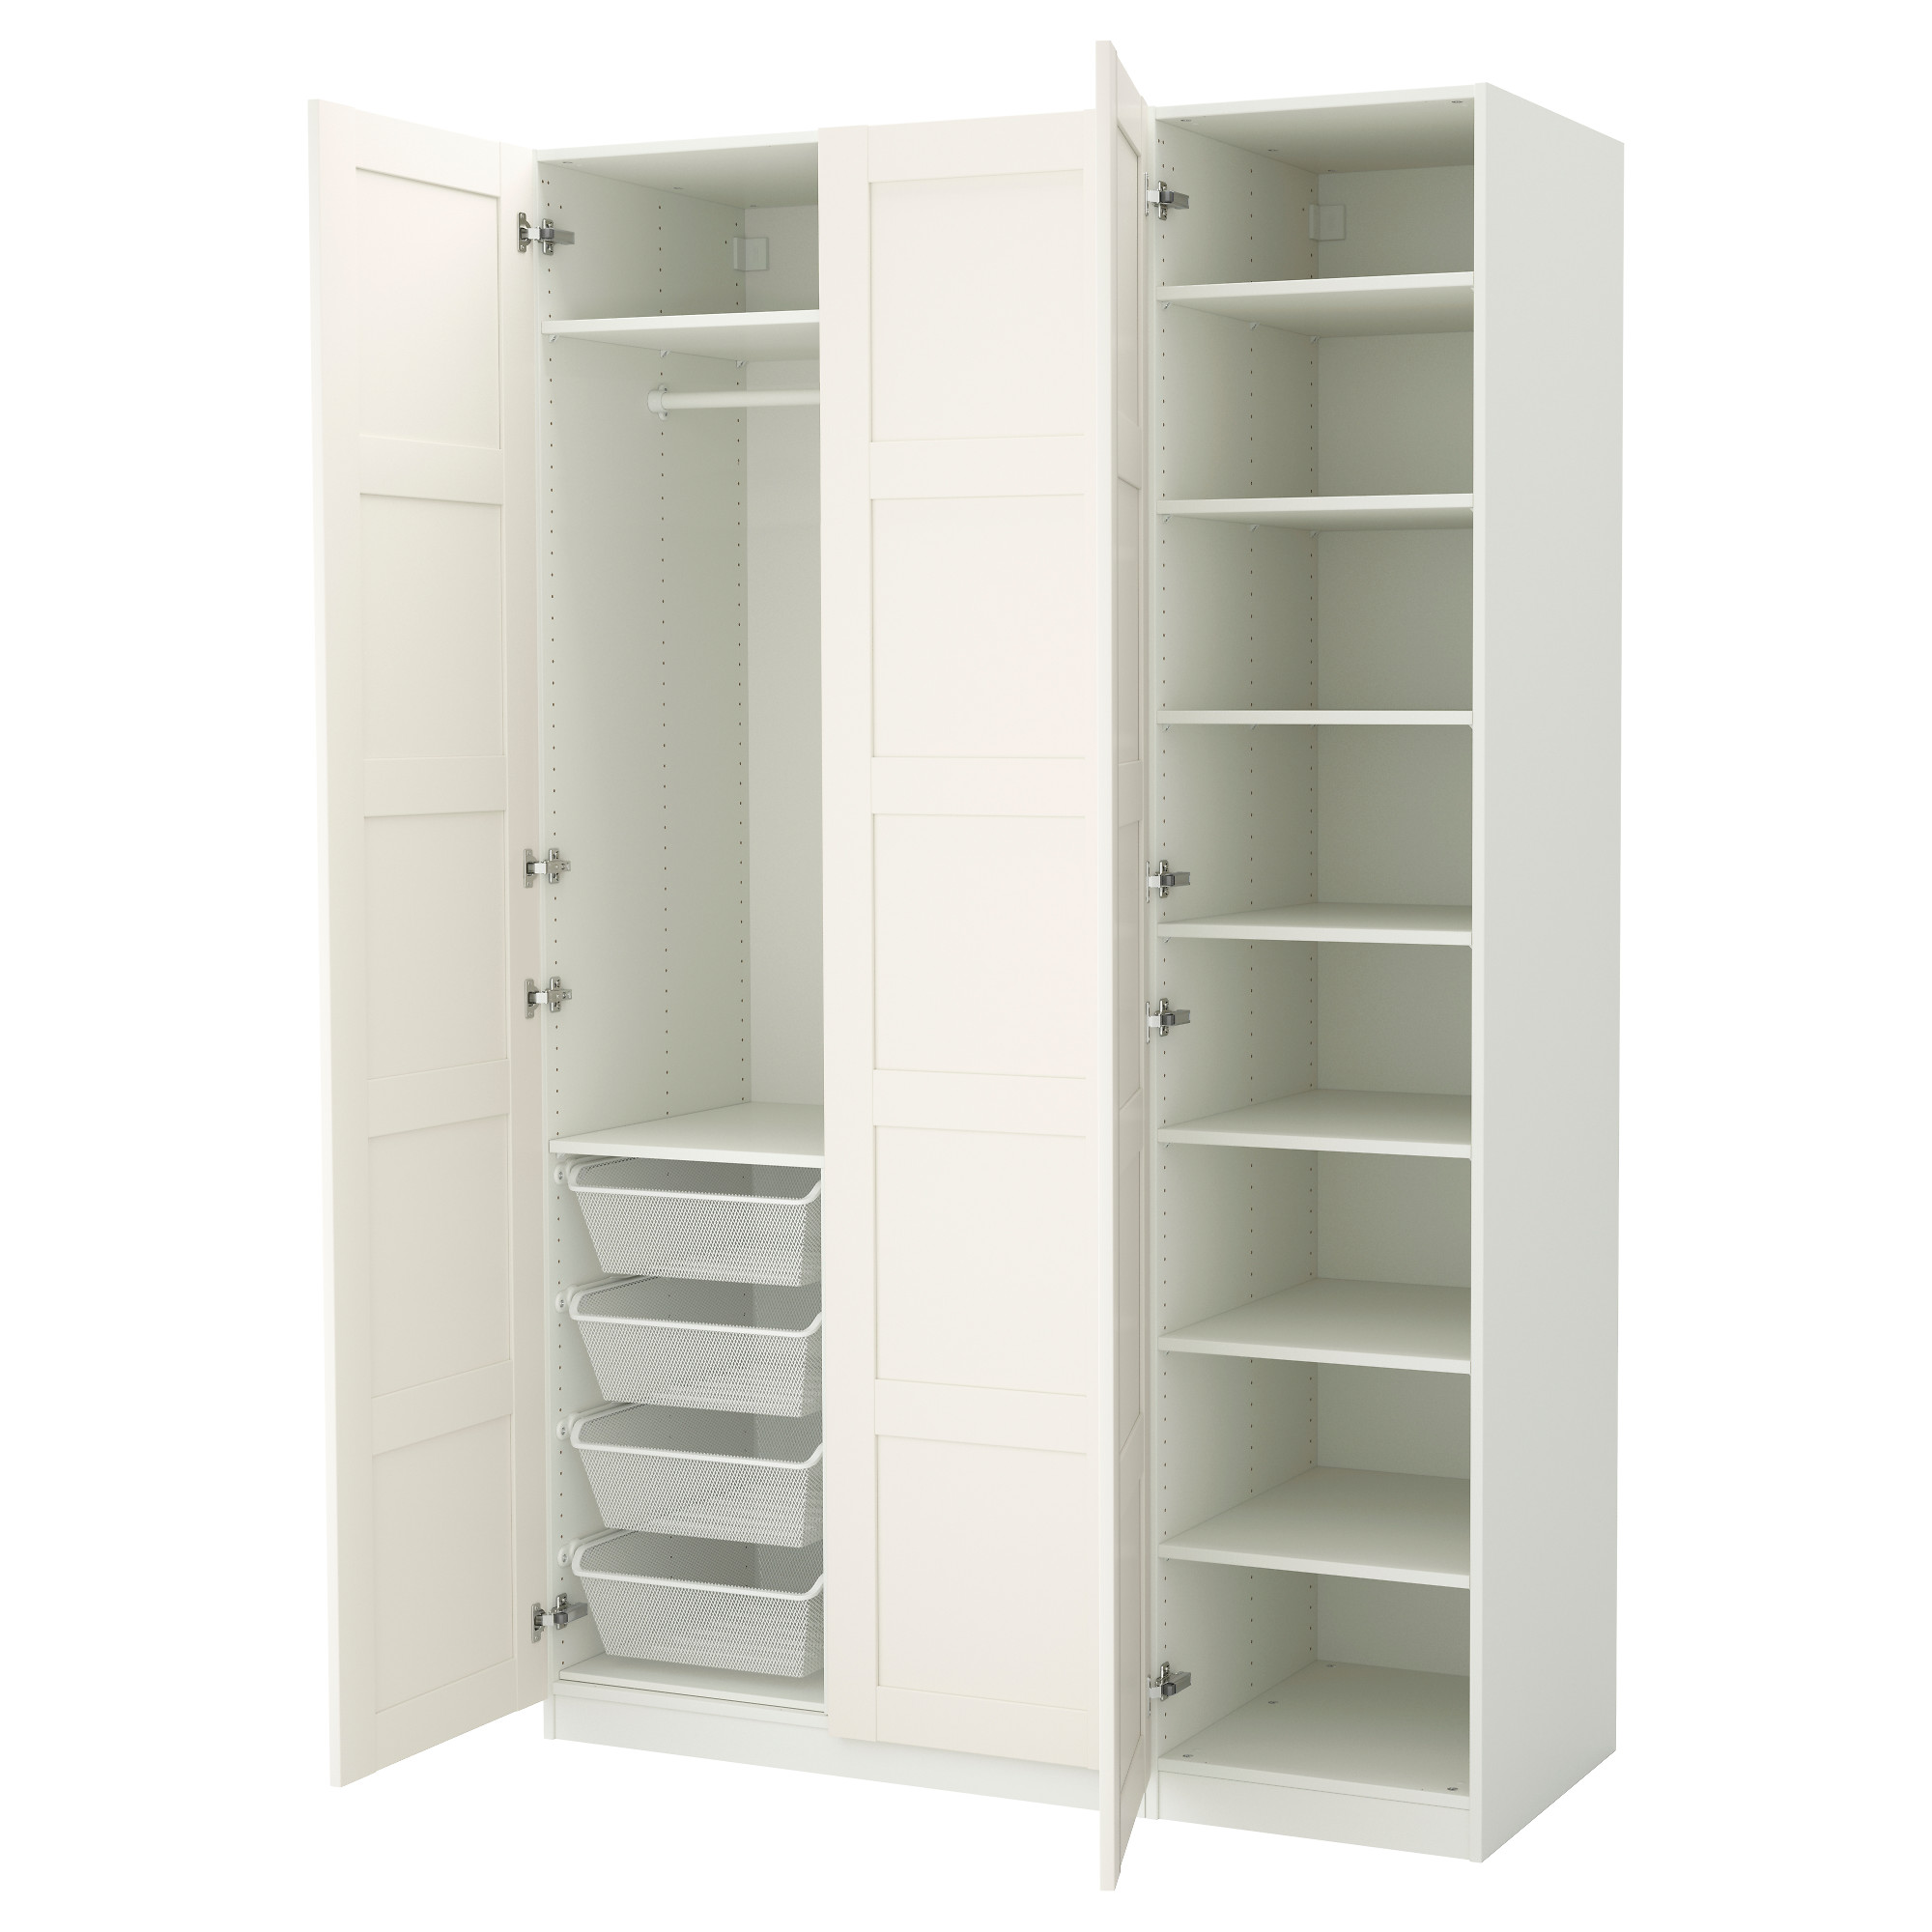 stained guarantee brochure pin oak in read white year terms effect the wardrobe about pax ikea